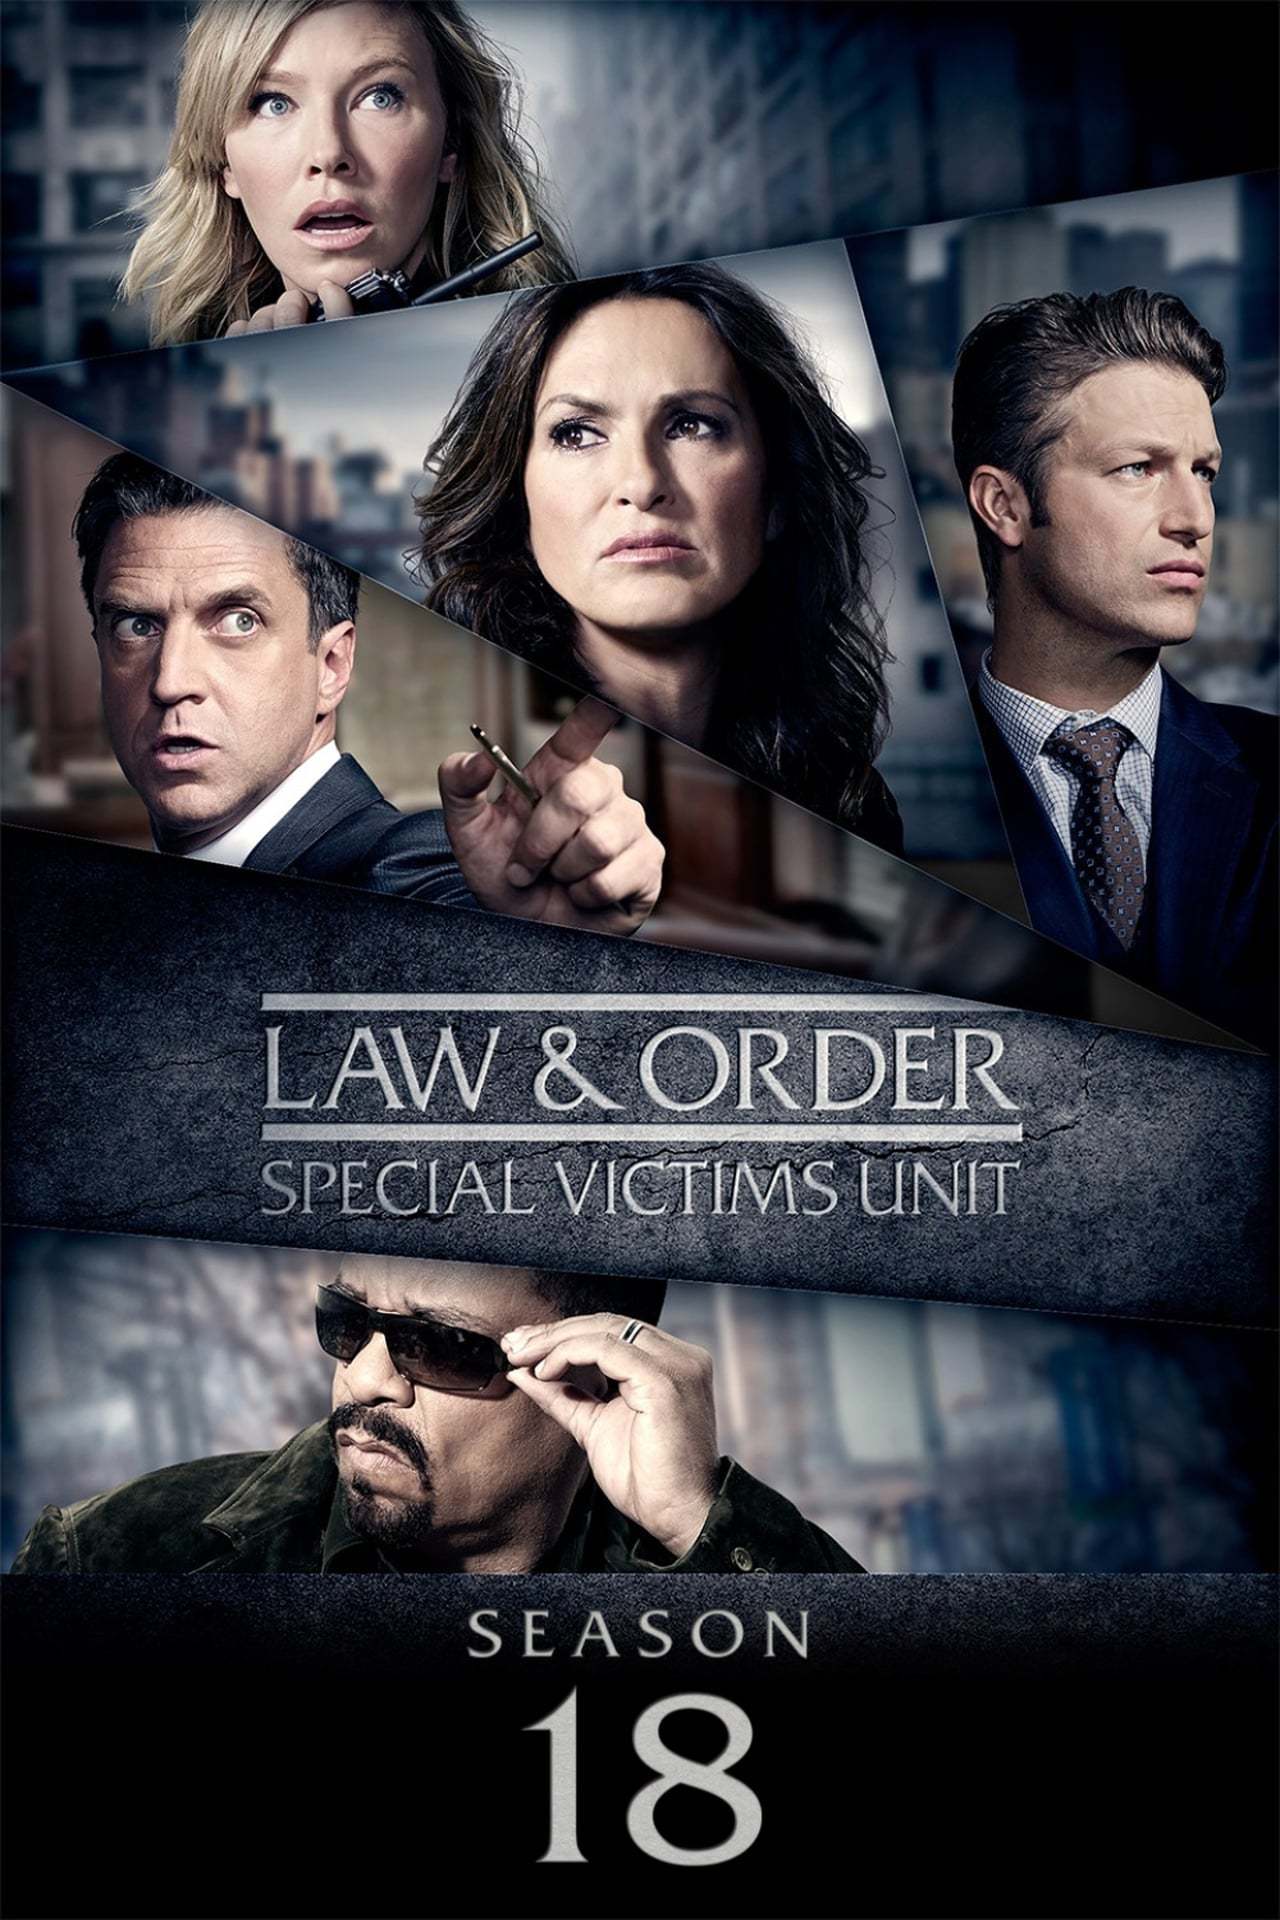 Putlocker Law & Order: Special Victims Unit Season 18 (2016)